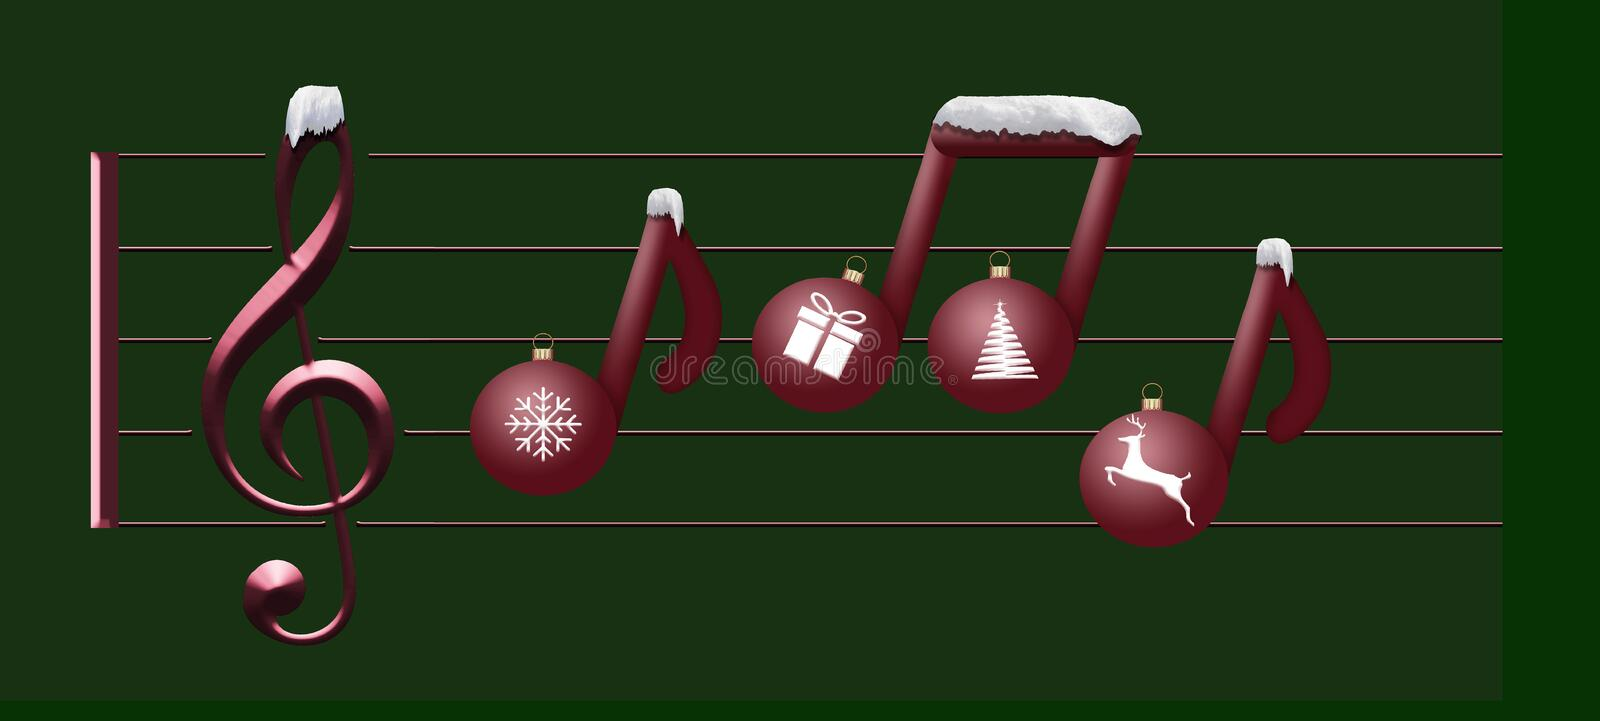 Musical notes made of Christmas ornaments float on a treble clef in this Christas holiday illustration about Christmas music. vector illustration